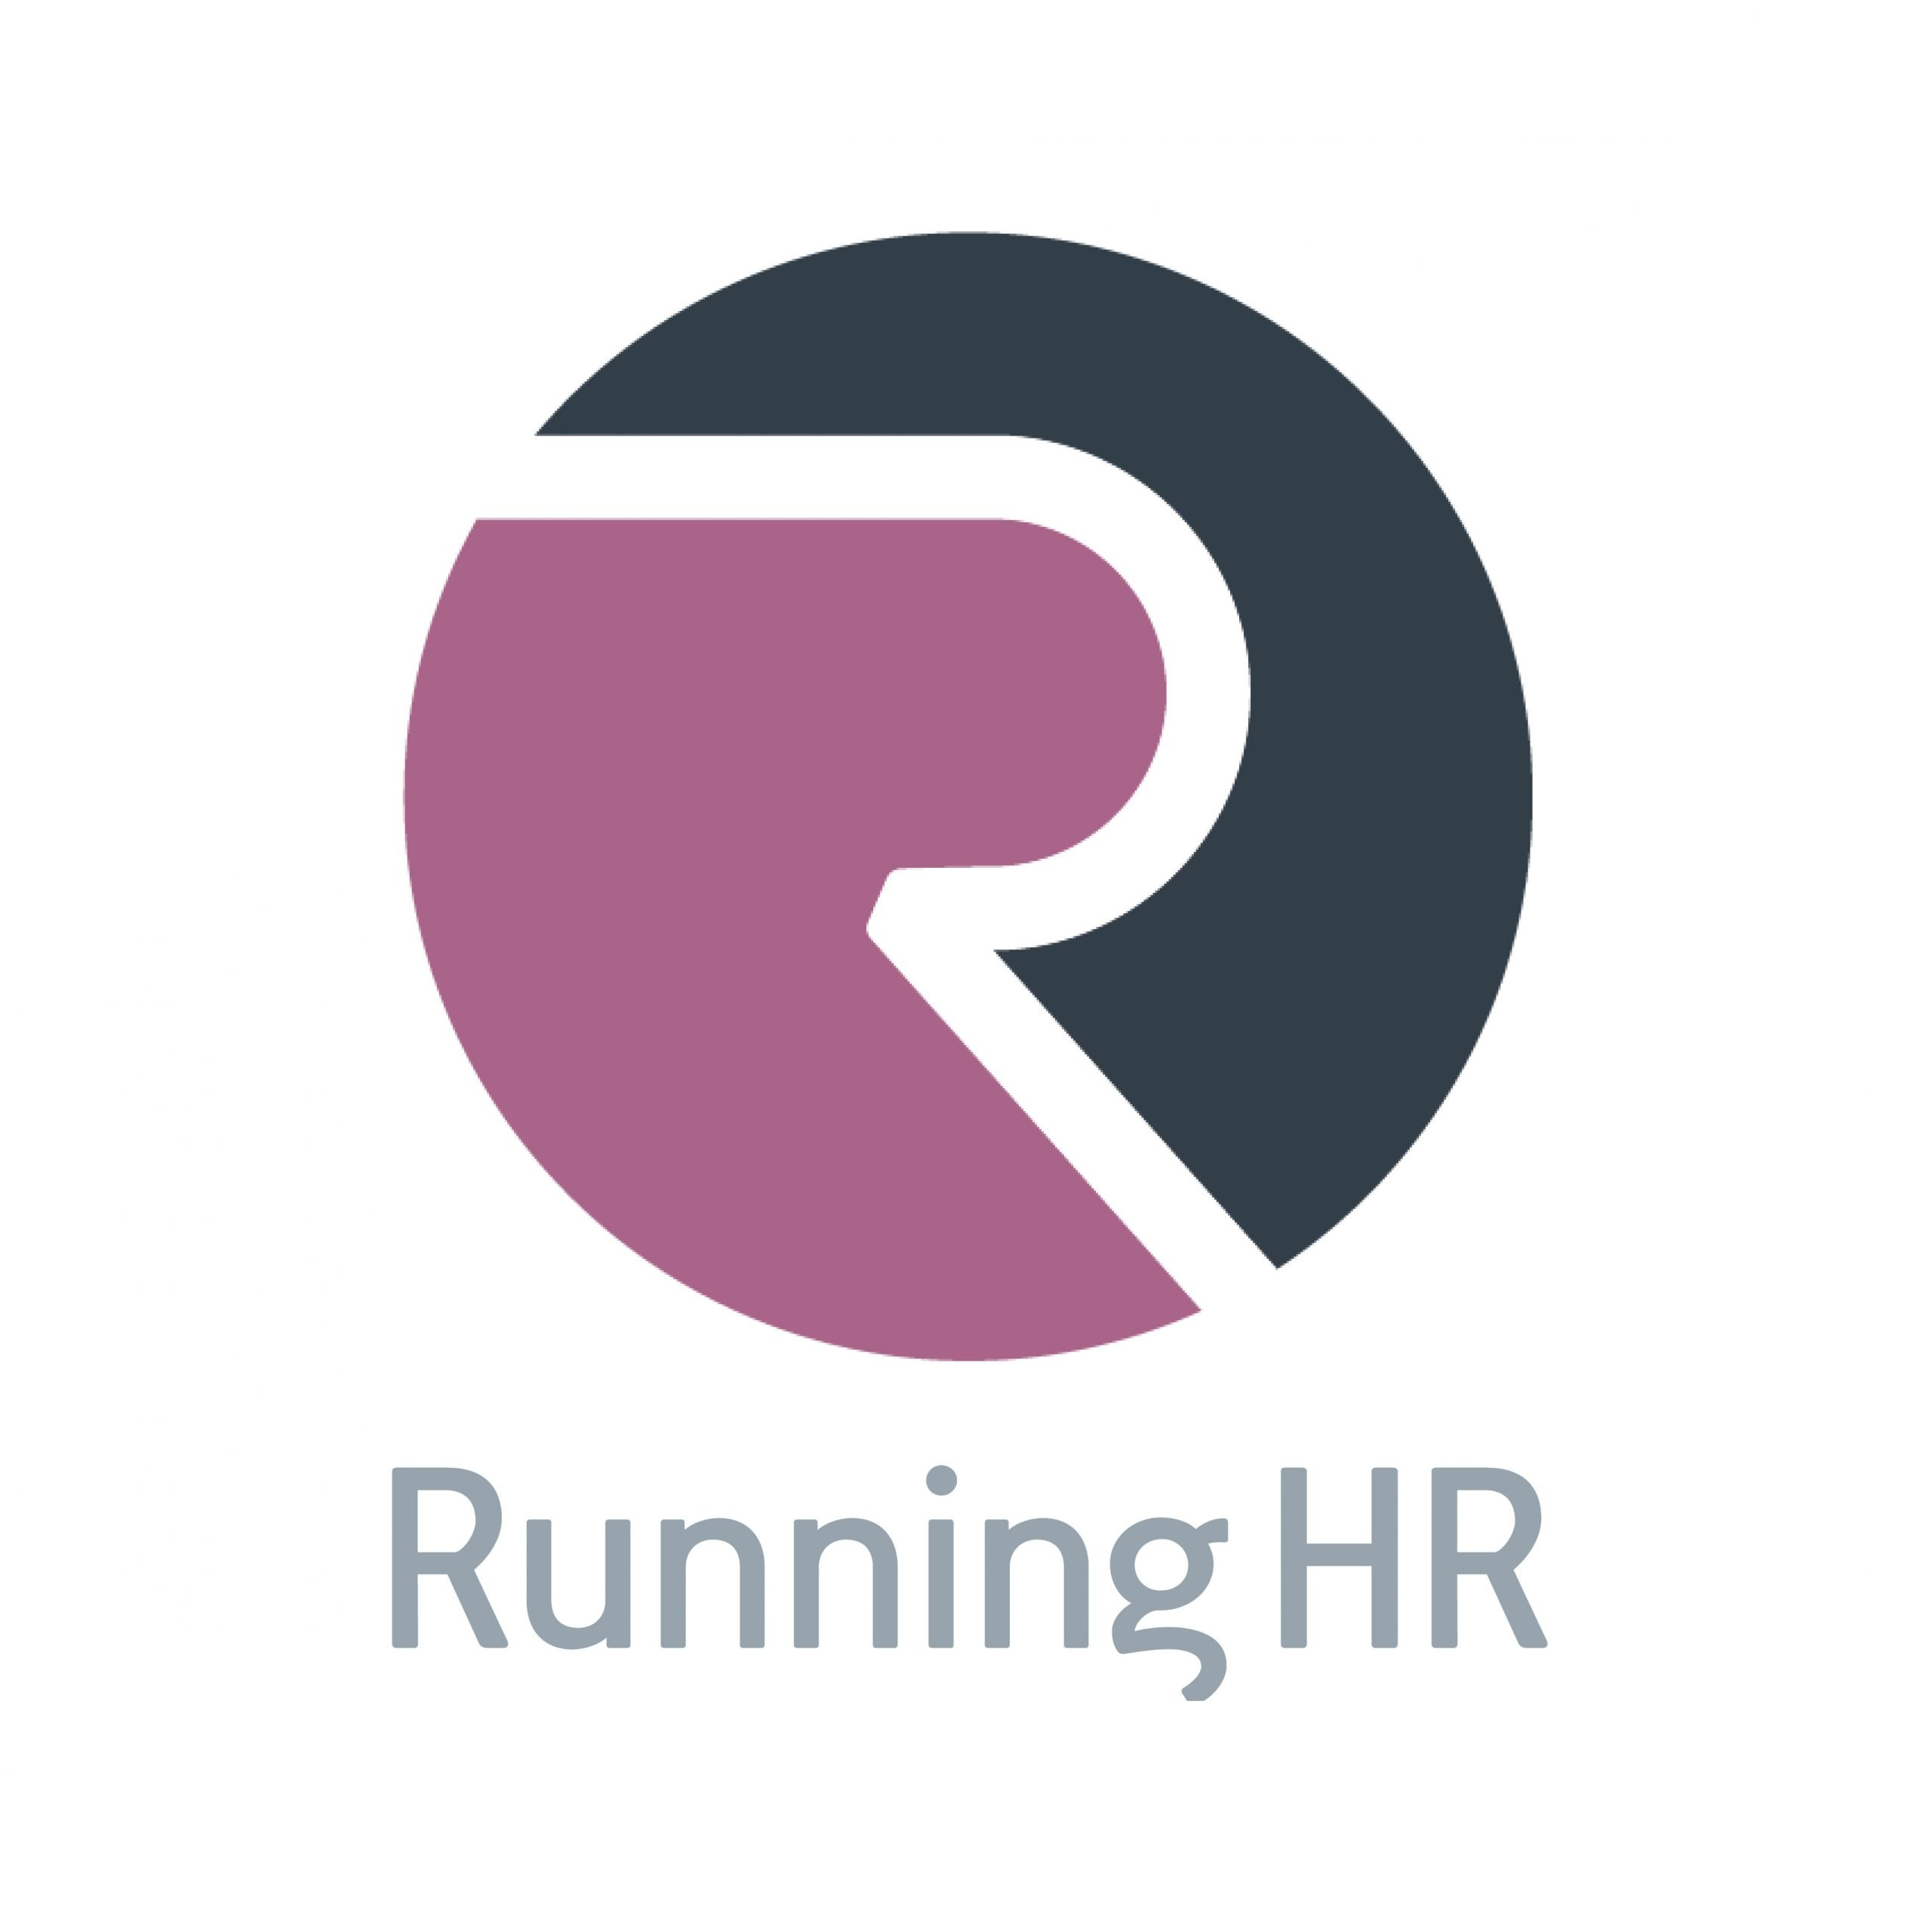 Running HR logo with Text